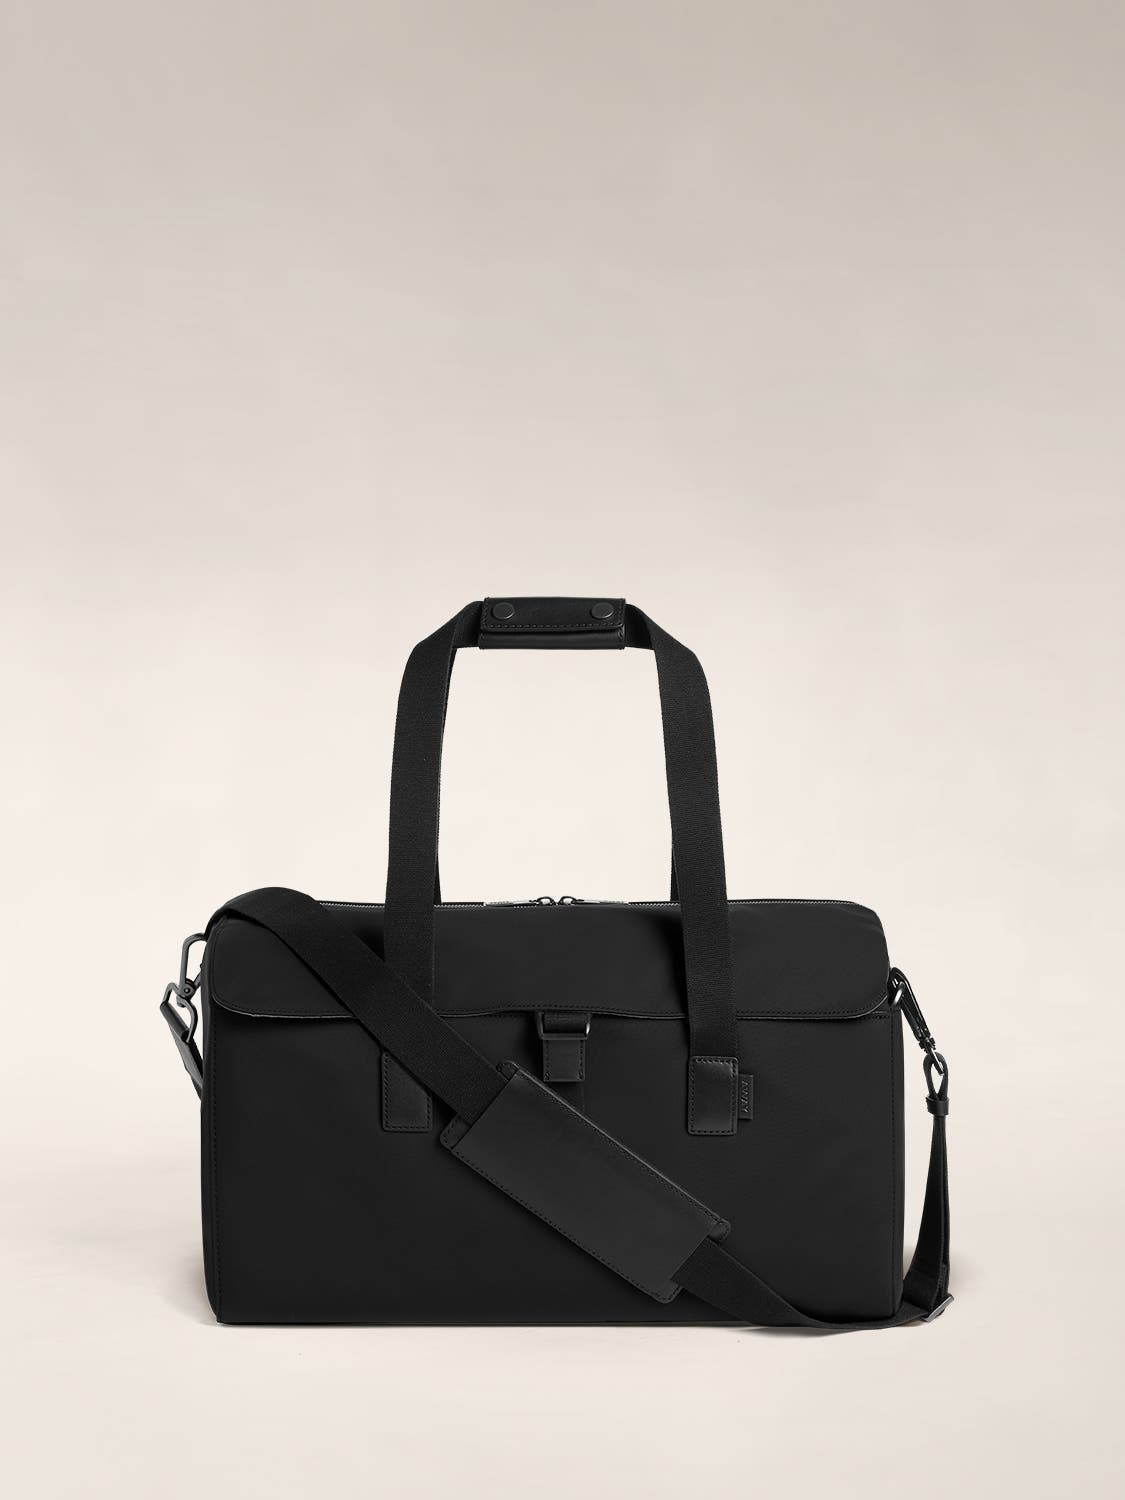 Flap black duffle bag in black with raised handles and shoulder strap across the bag.